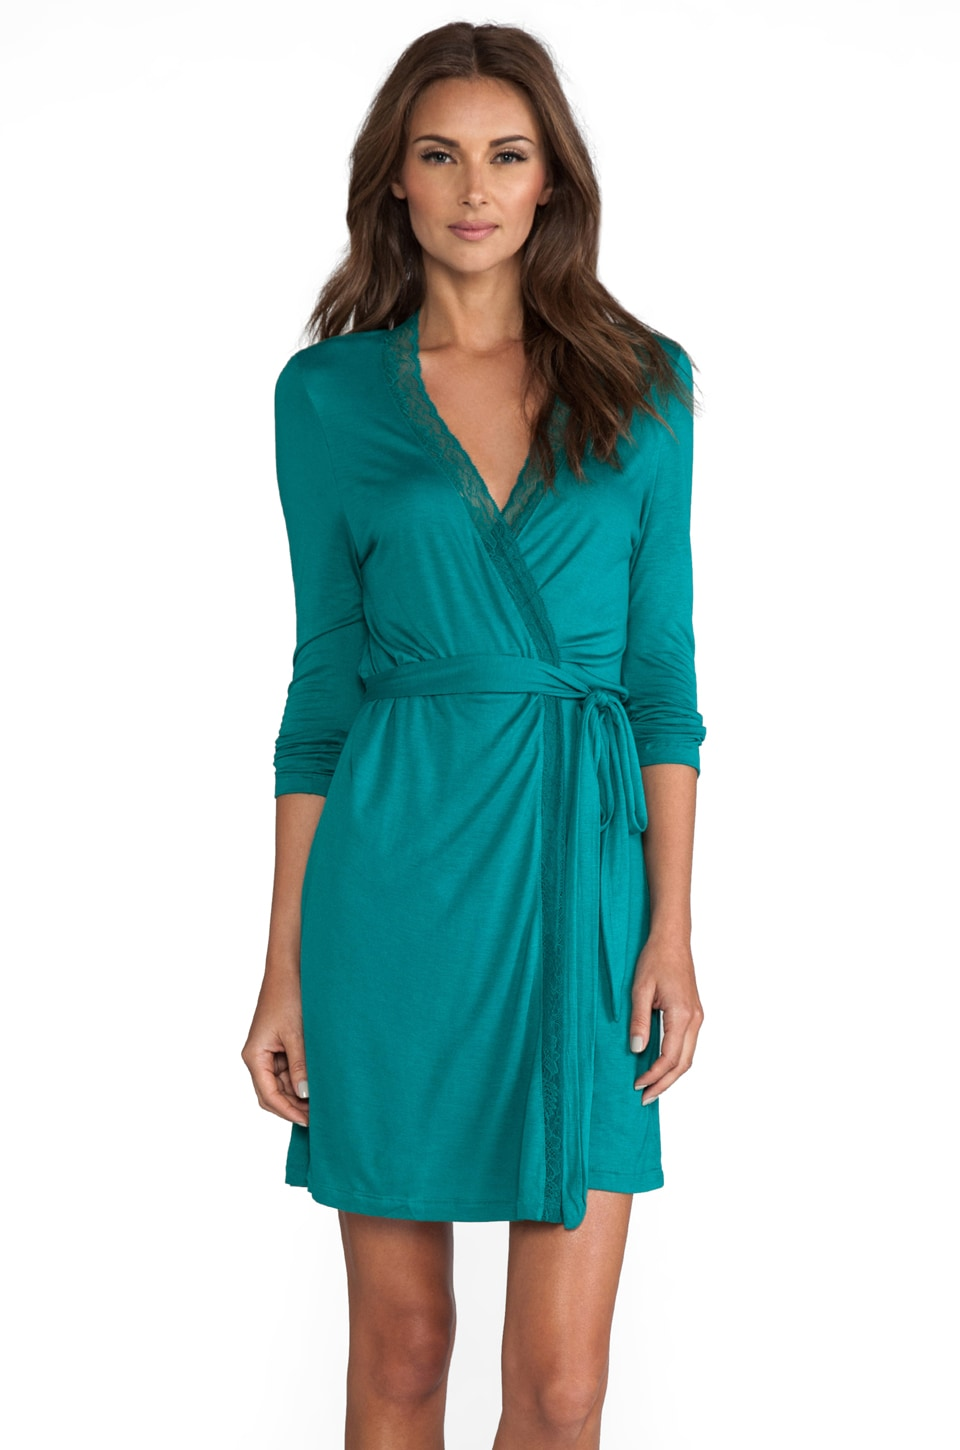 eberjey Veronique Lace Robe in Emerald